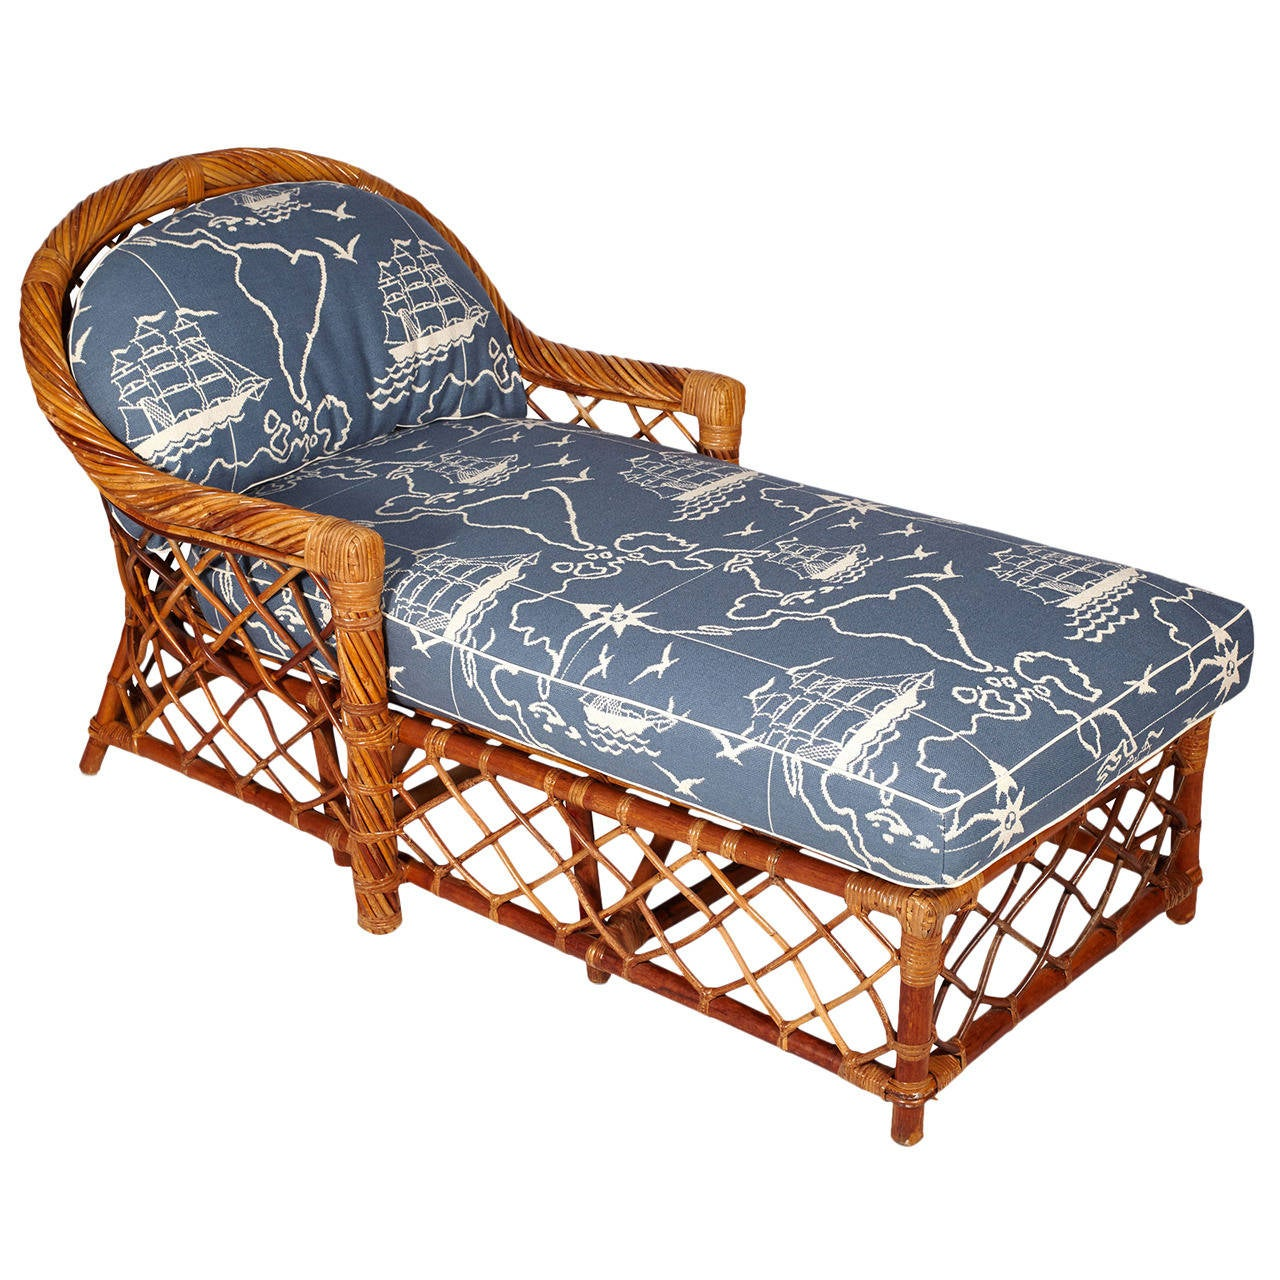 Bielecky bros rattan chaise lounge at 1stdibs for Chaise longue rattan sintetico